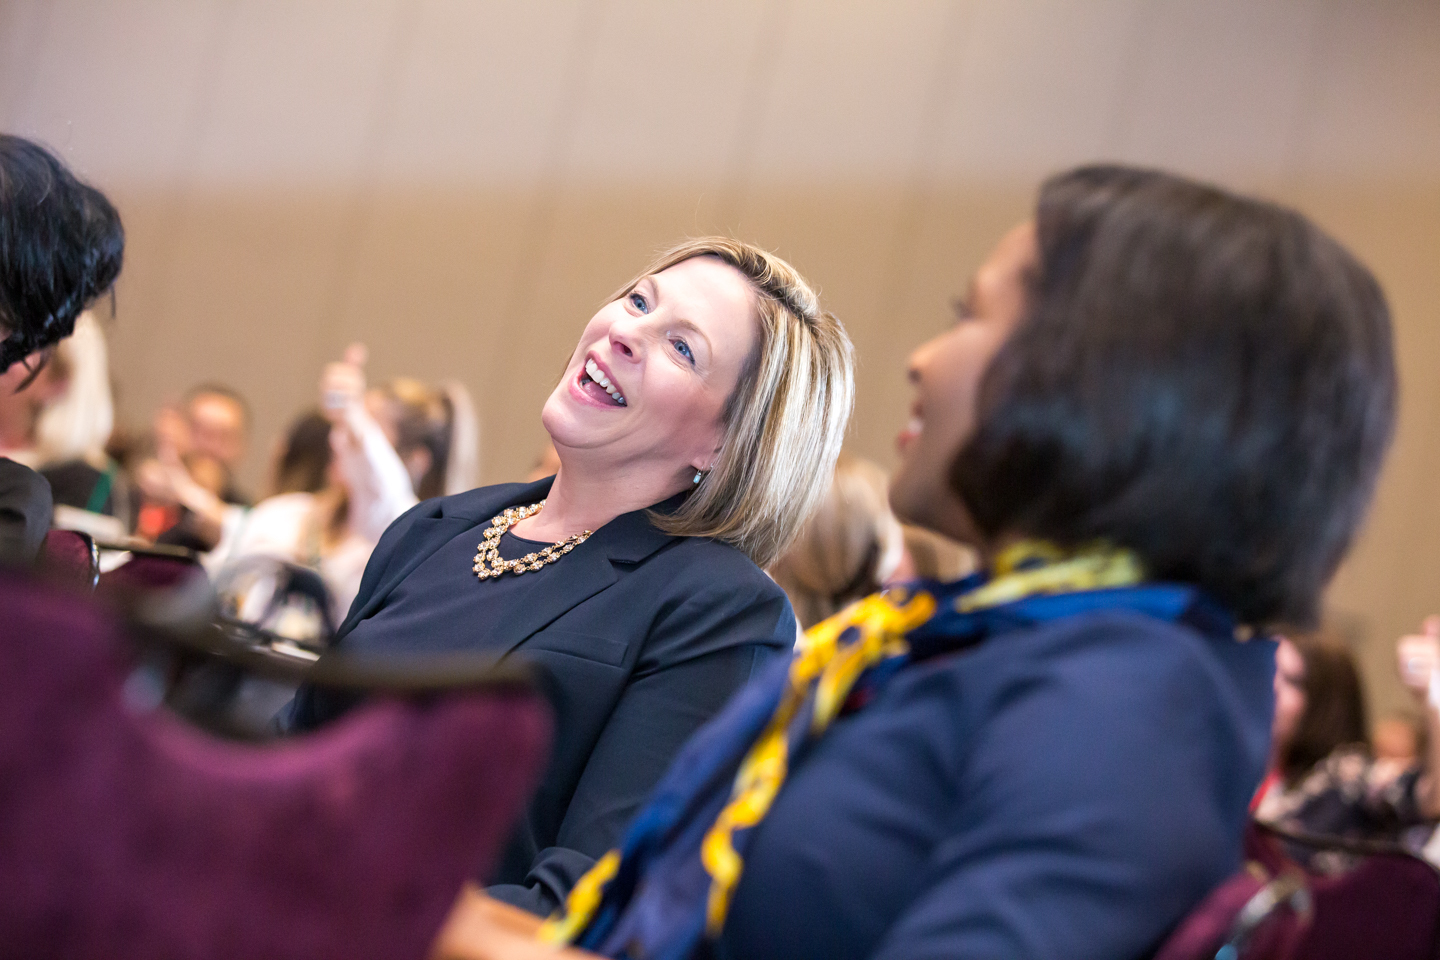 AAPPR-Conference-Expo-Professional-Event-Photography-Photographer-Orlando-audience-17.jpg